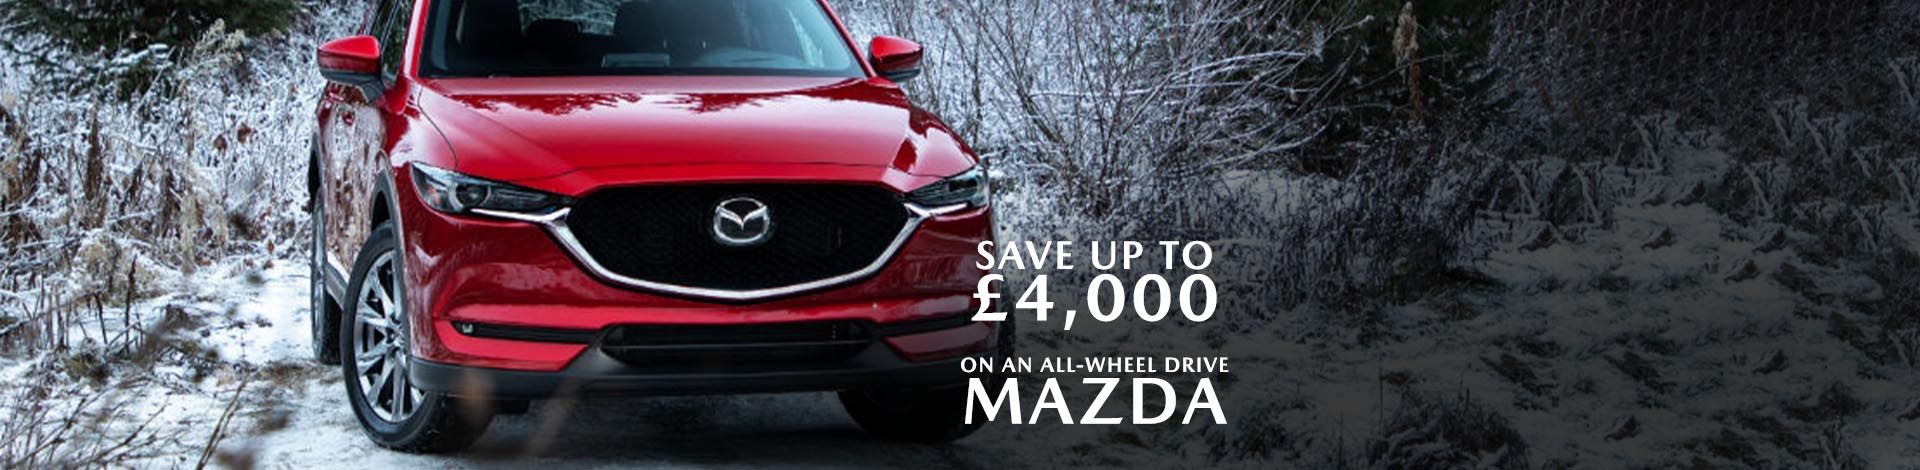 Mazda Compound Clearance